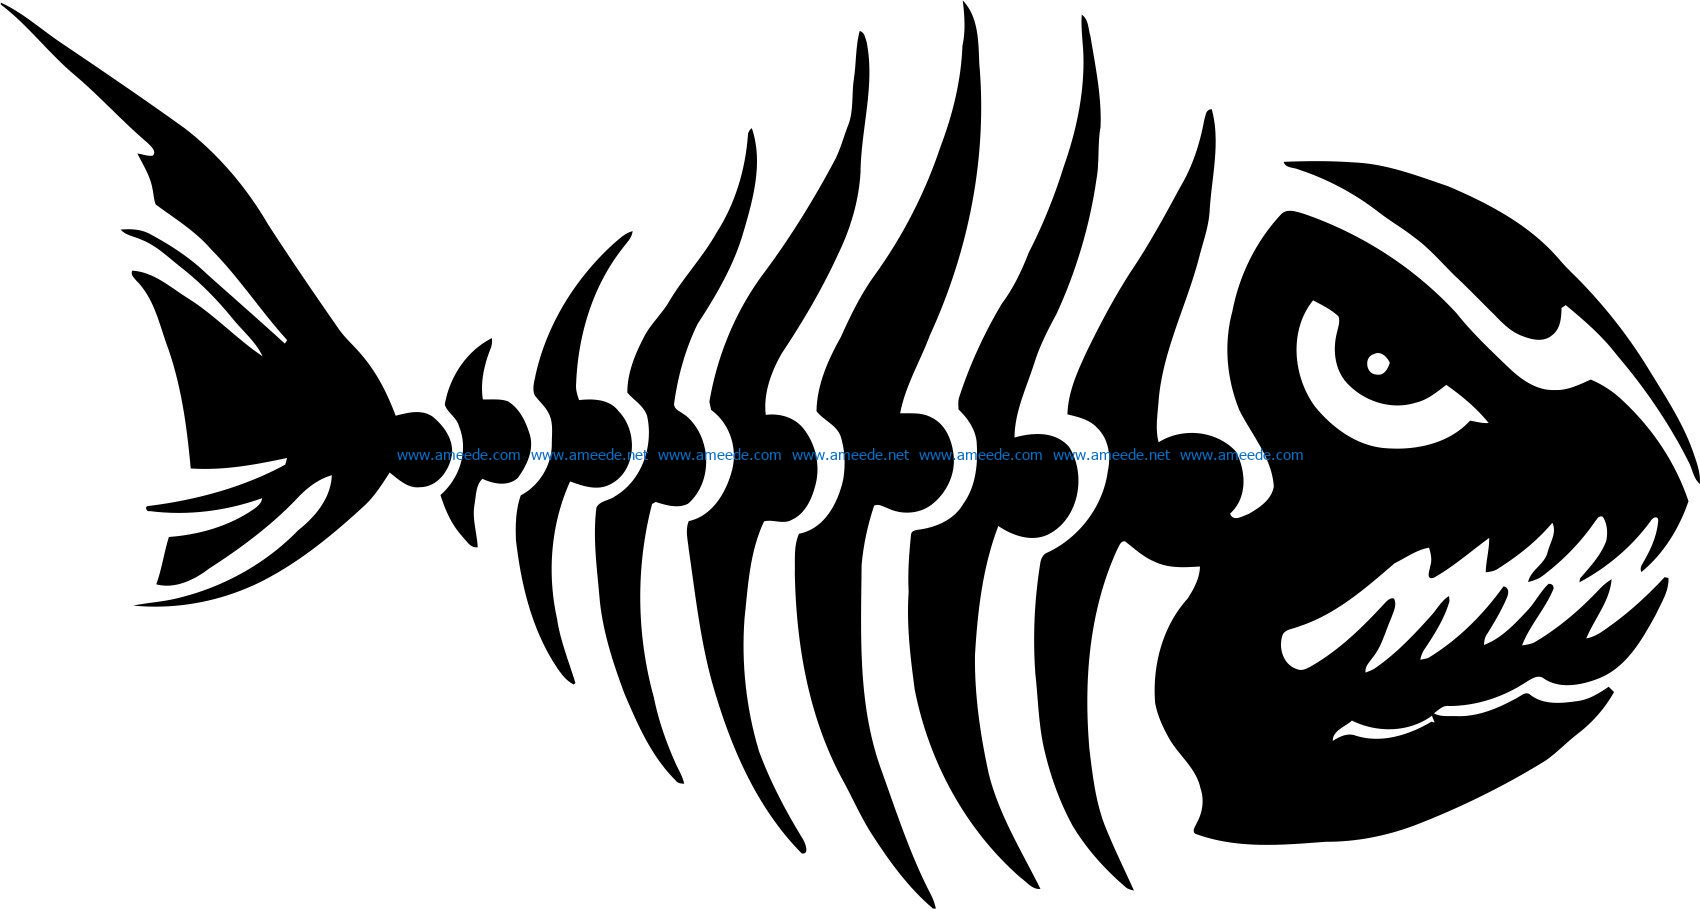 fish bones decal by etsy file cdr and dxf free vector download for print or laser engraving machines